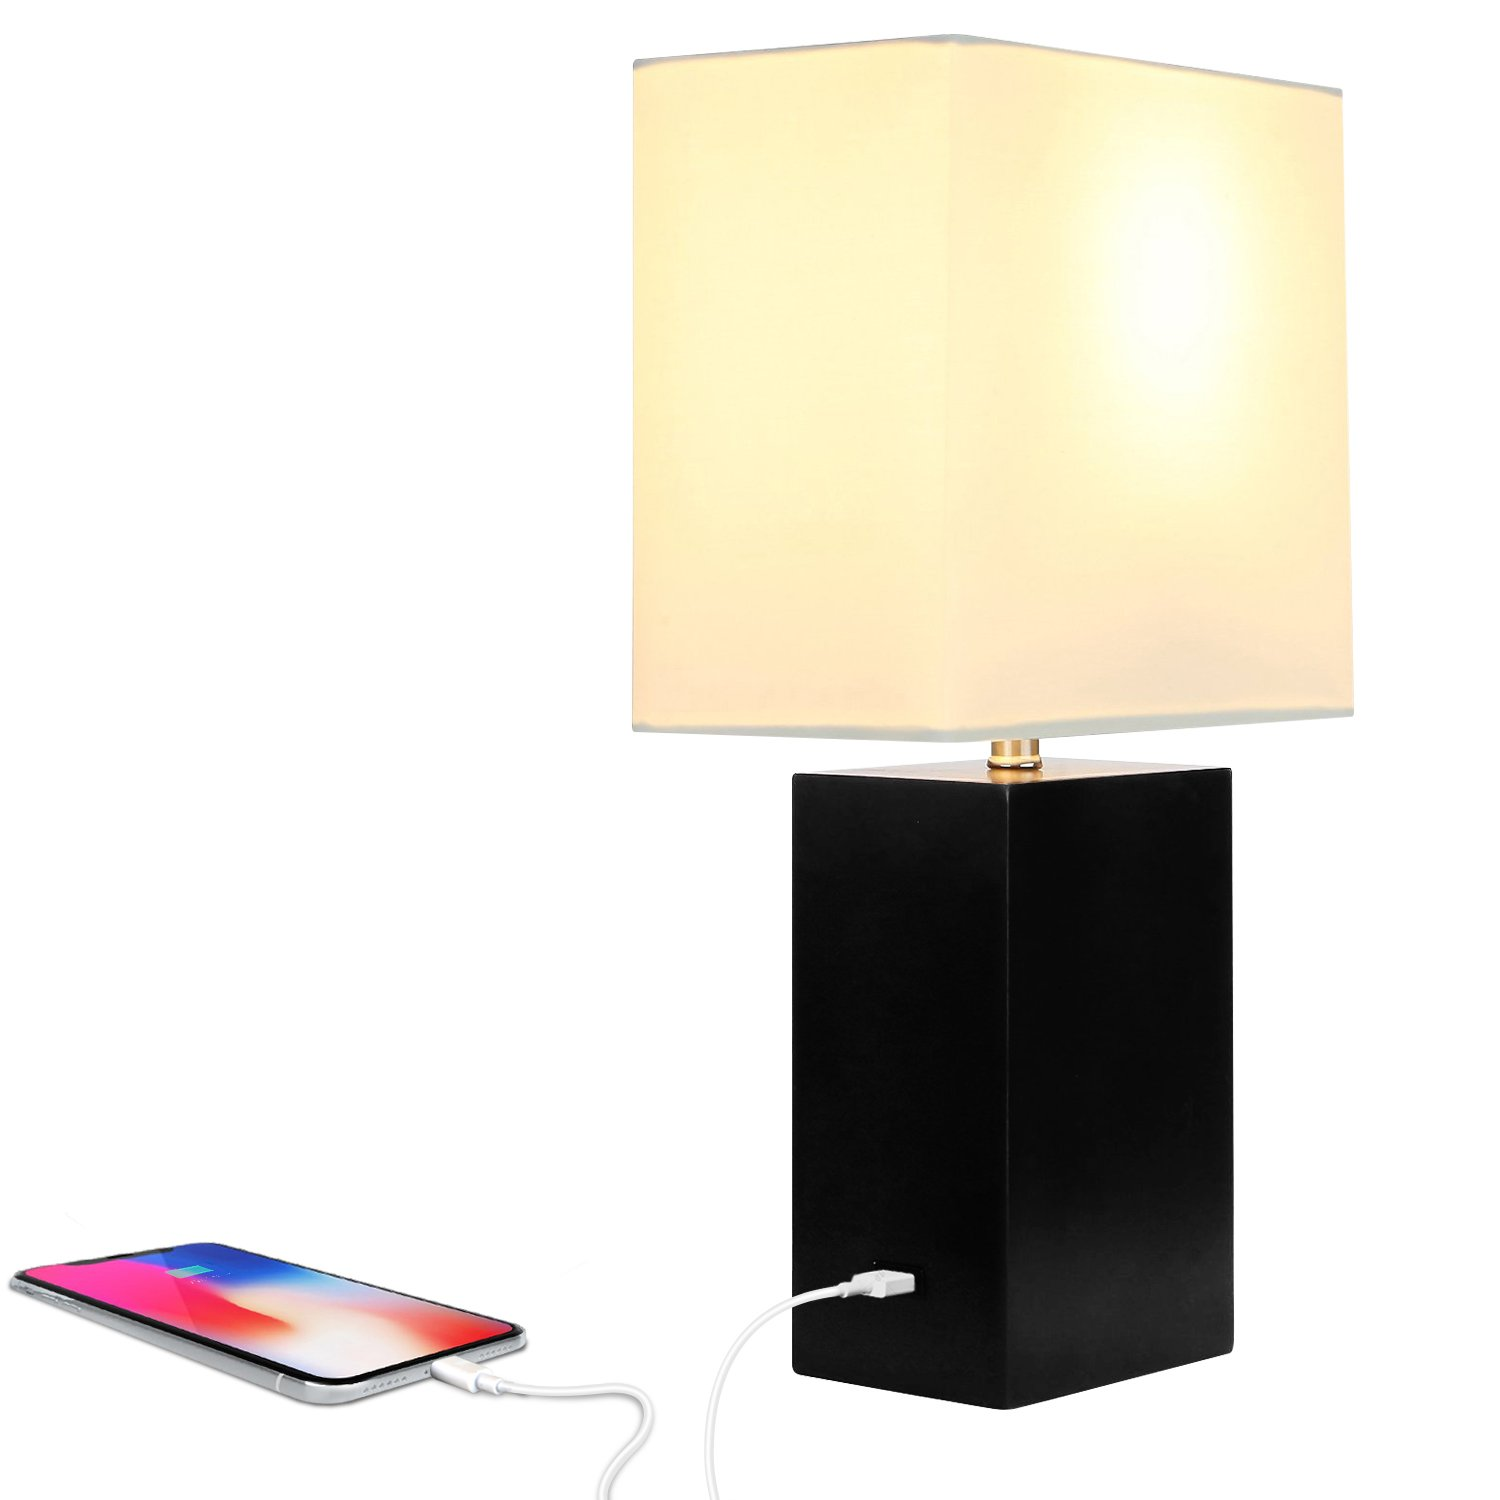 Brightech Mode LED USB Side Table & Desk Lamp – Modern Lamp for Bedroom, Living Room or Office with Ambient Lighting, Unique Lampshade & Useful USB Port Perfect Bedside Nightstand Light- Black